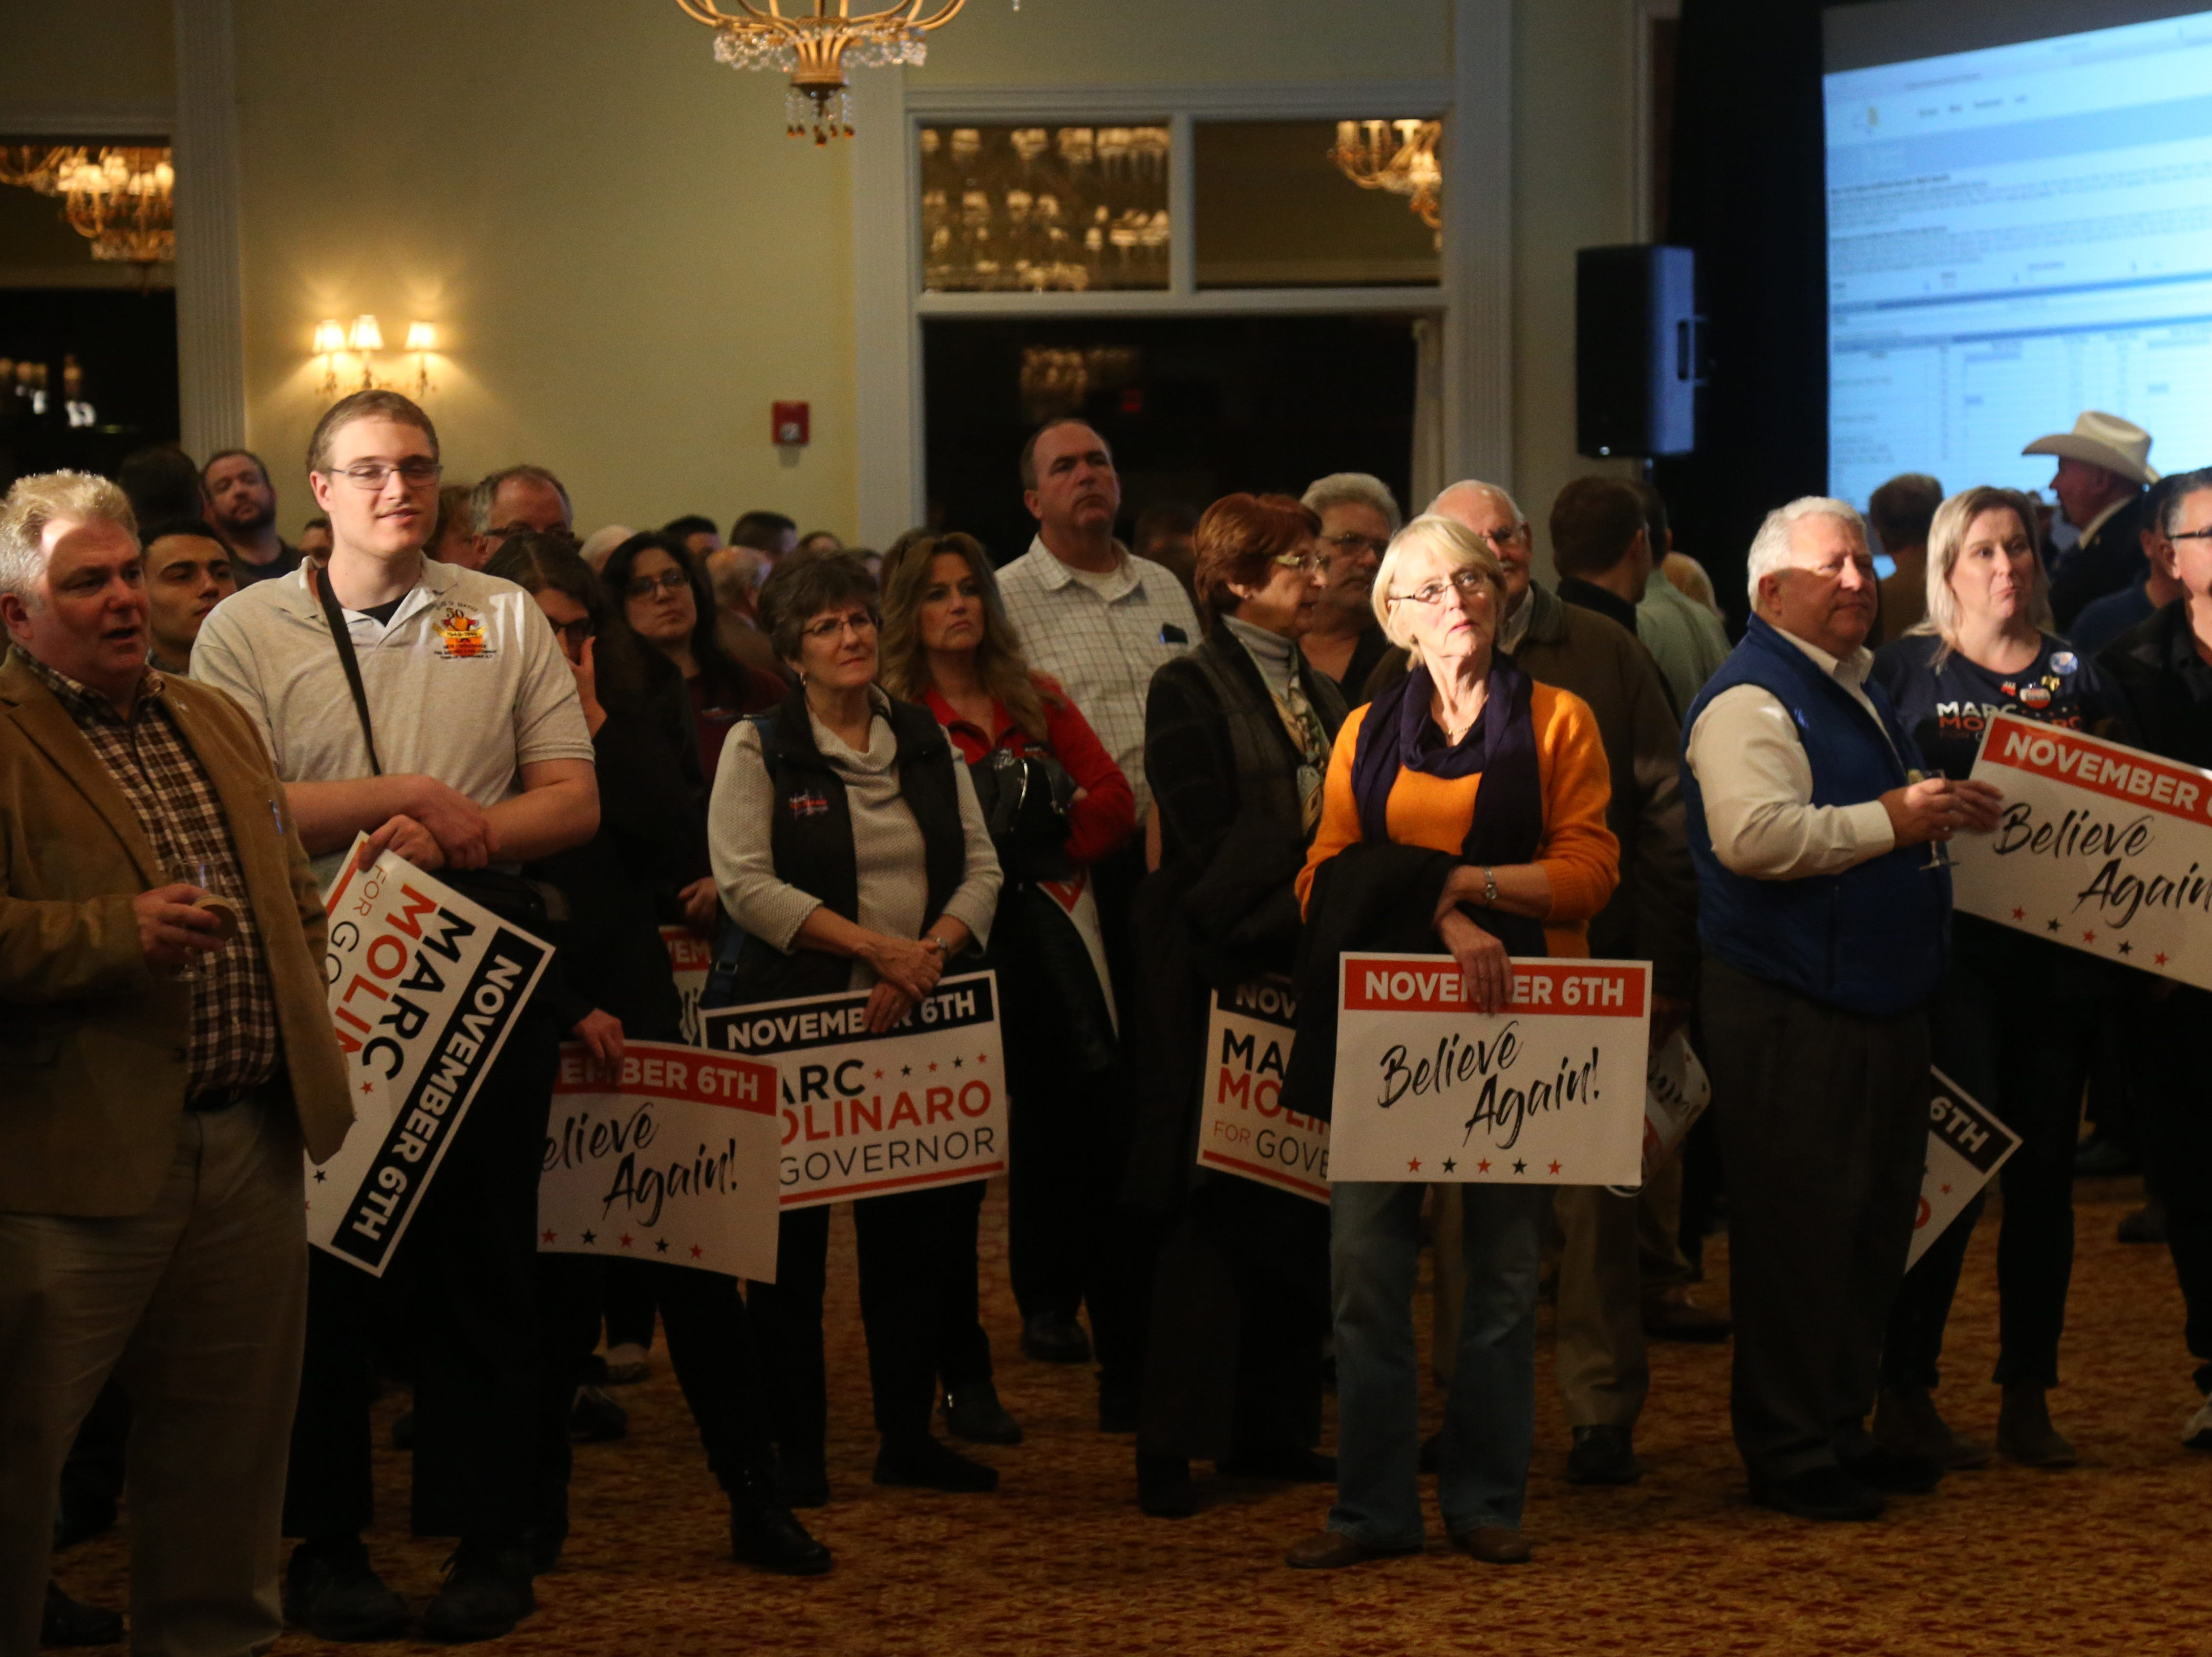 Supporters of Marc Molinaro await the results of Tuesday's election in the City of Poughkeepsie on November 6, 2018.]